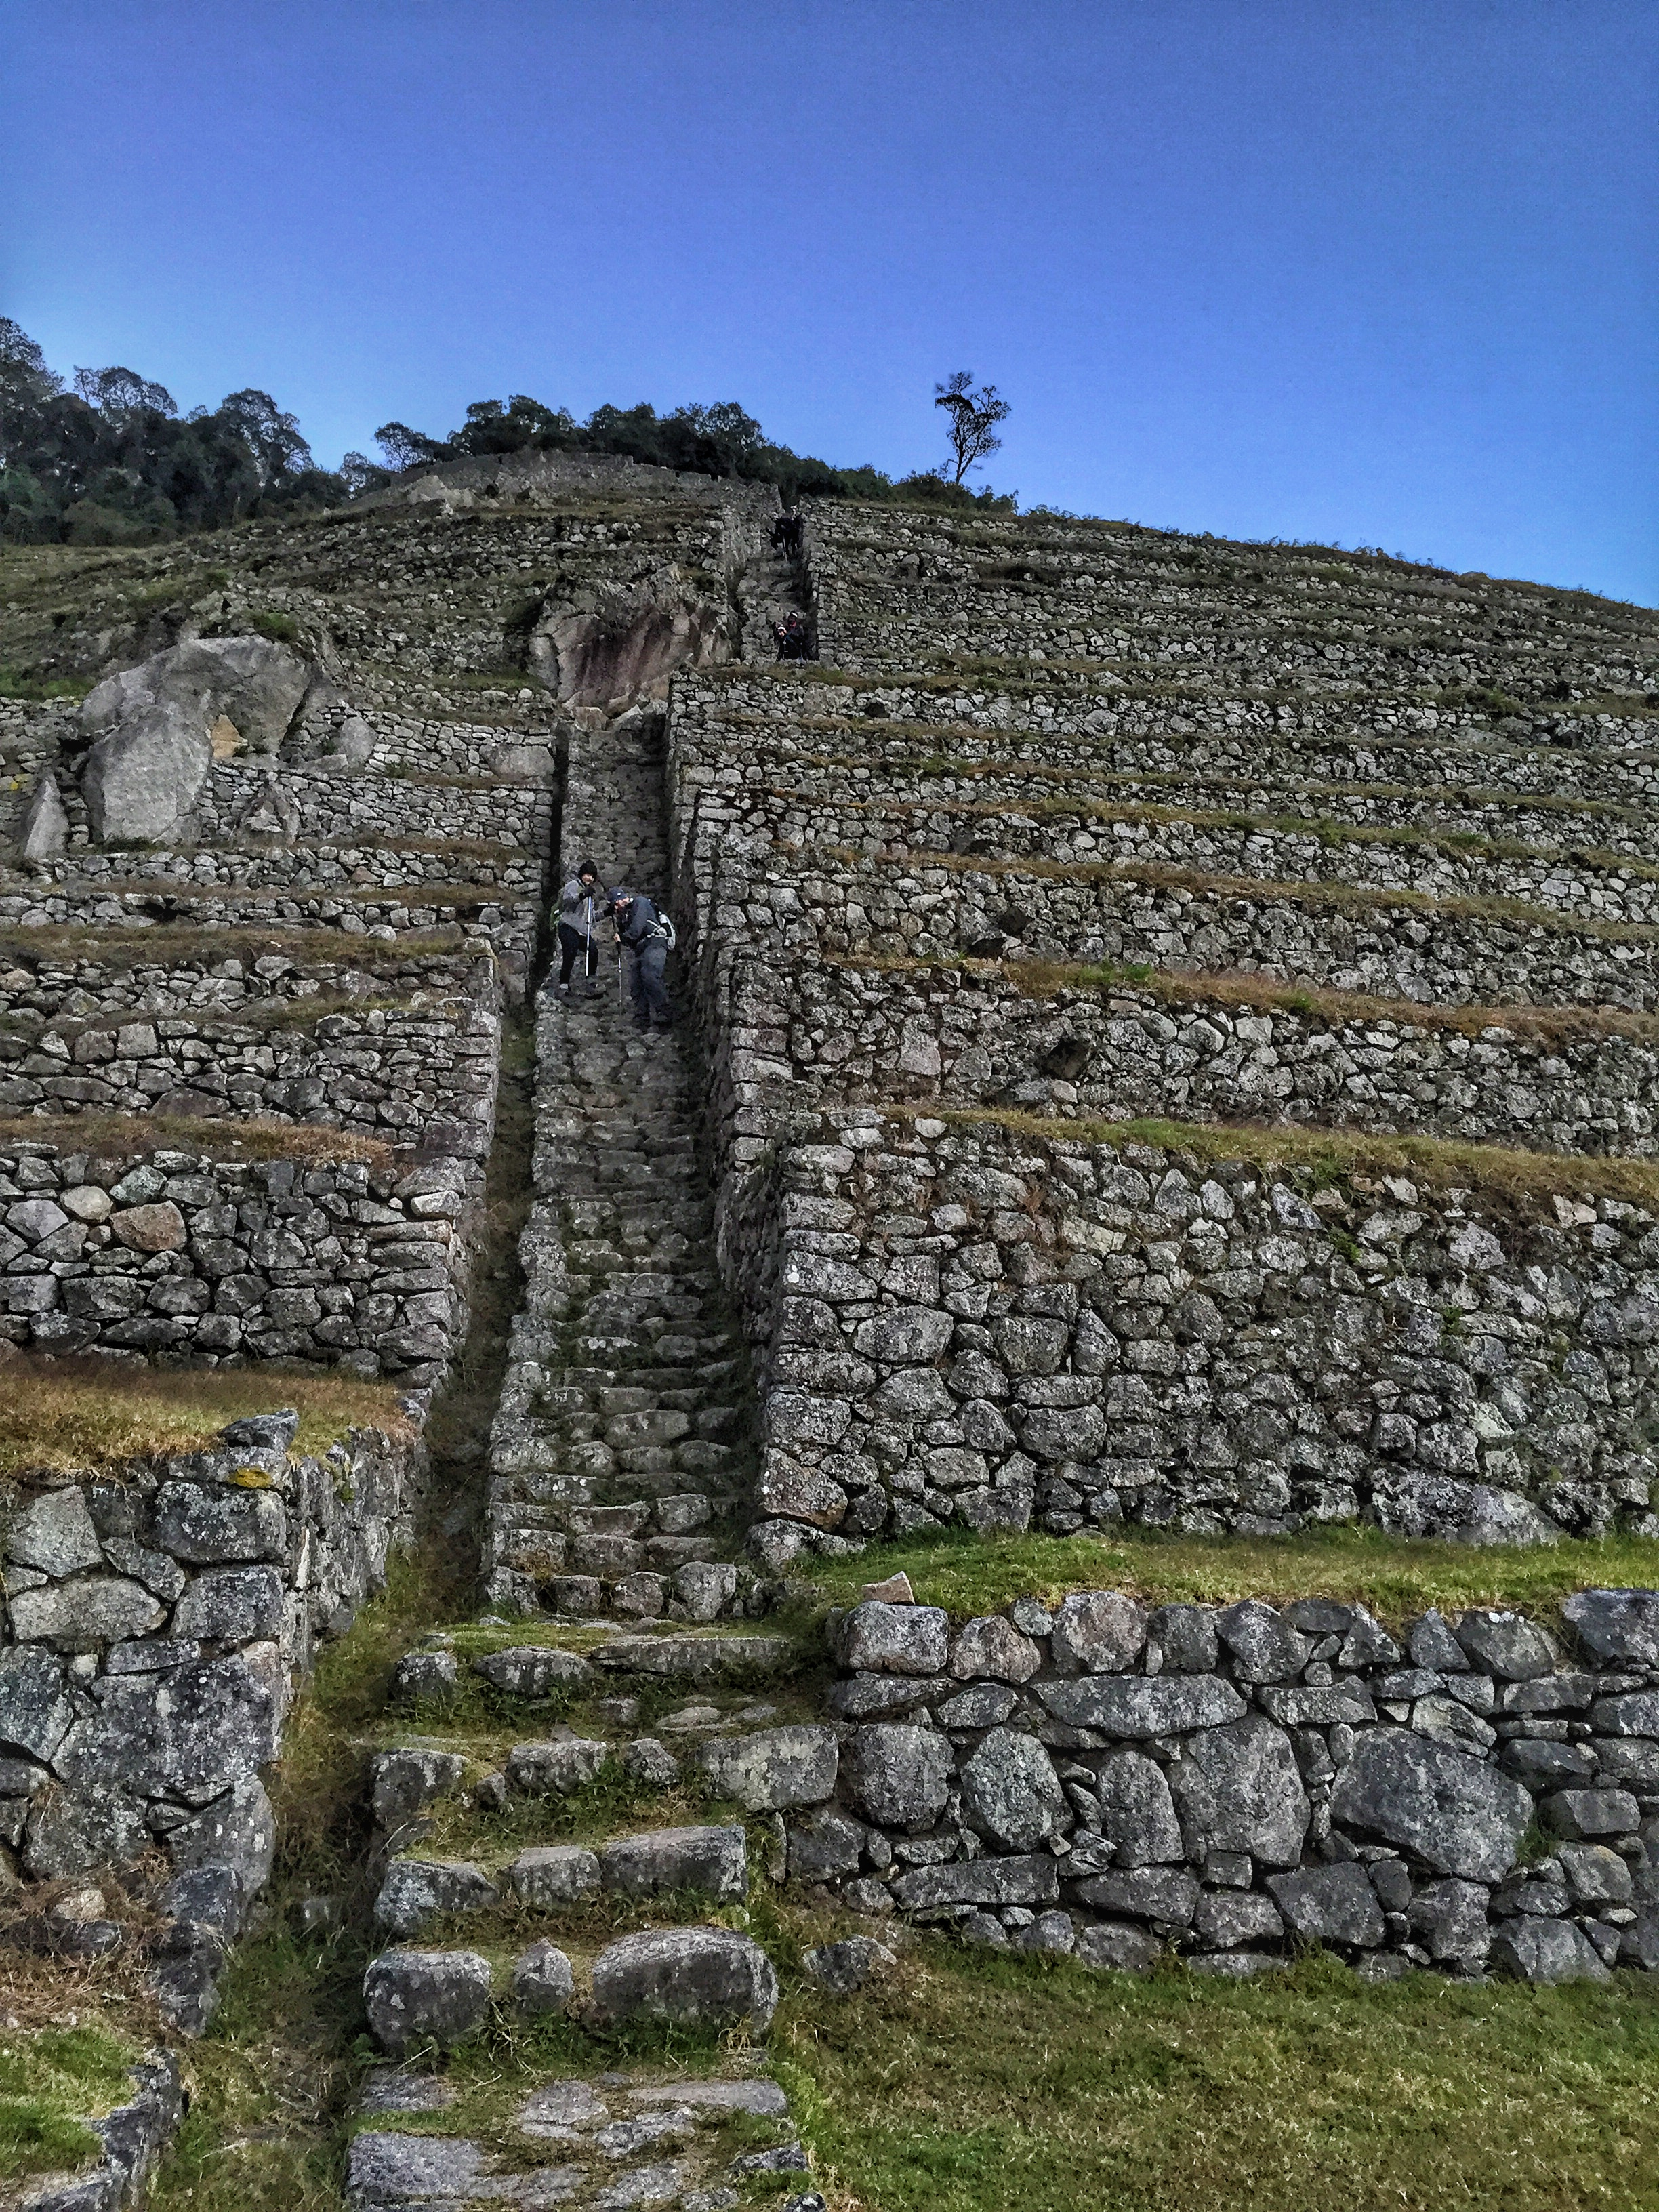 More steps at Intipata, but thankfully, it was getting light out.